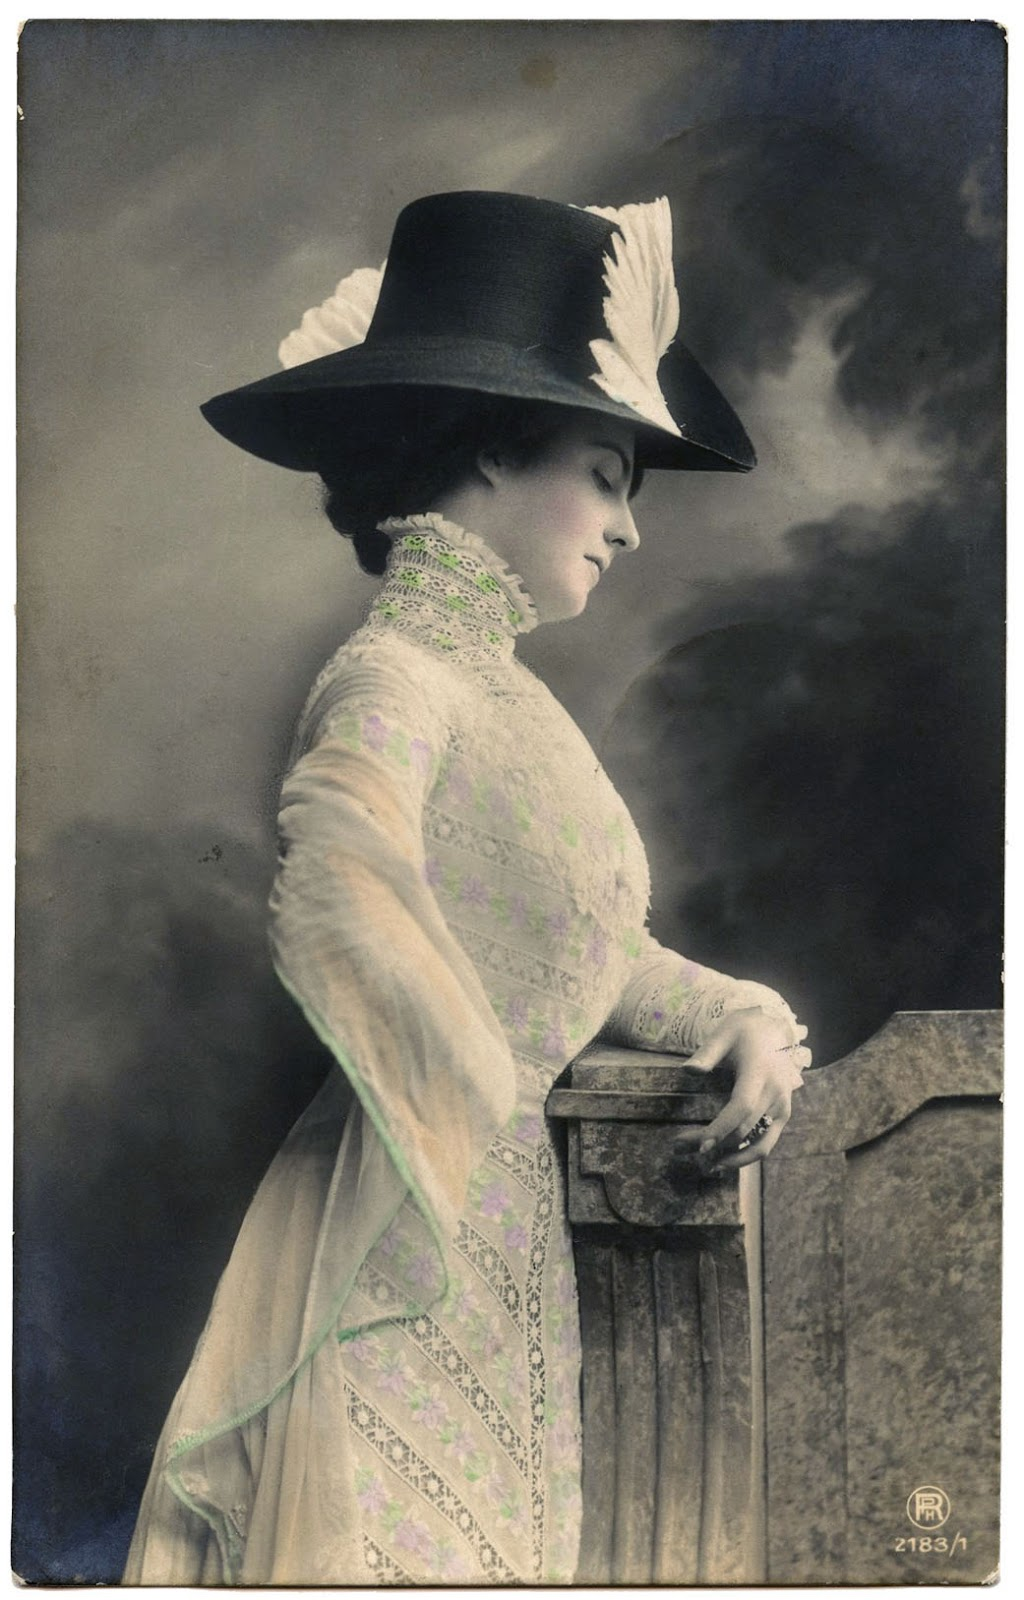 Old Photo - Edwardian Lady with Fancy Hat - The Graphics Fairy 35dfa0ffa17